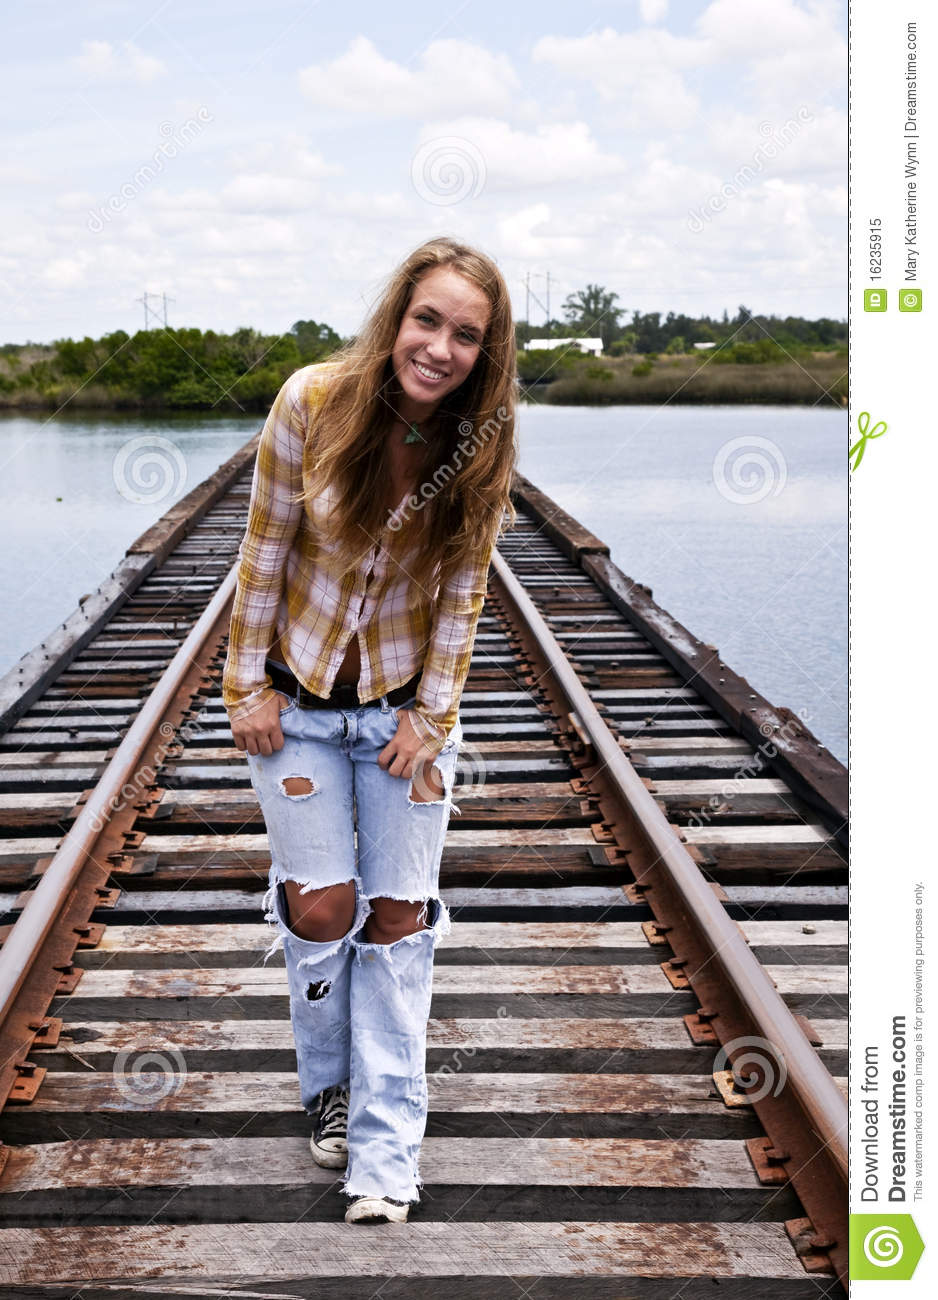 teen girl on railroad tracks